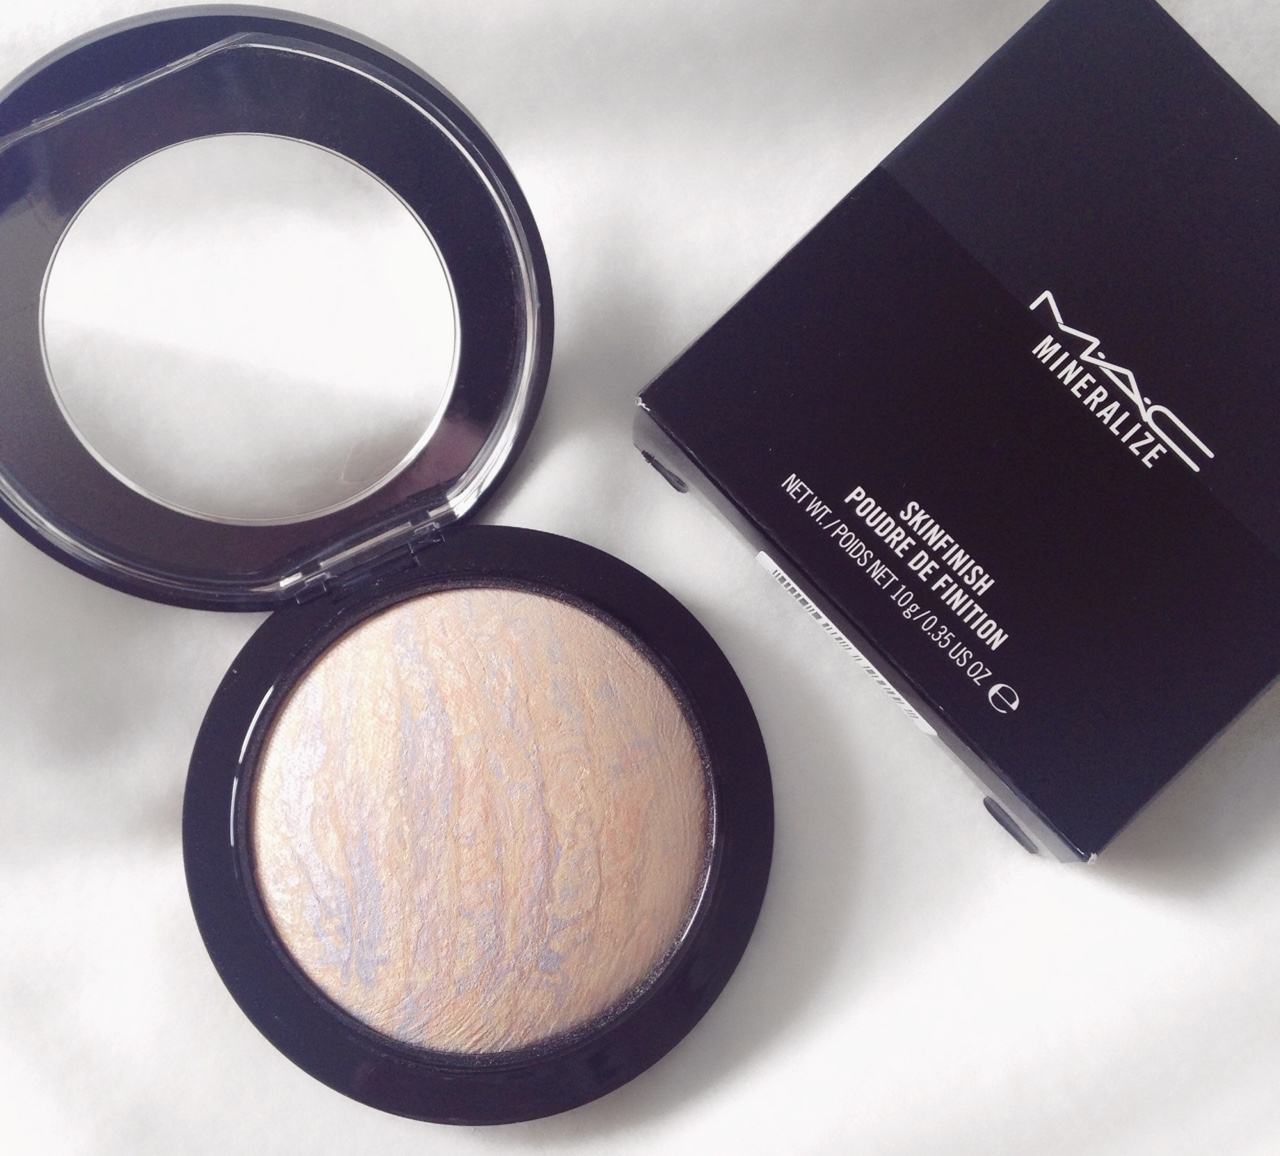 Mac Mineralize Skinfinish Lightscapade, Soft and Gentle, Highlight, Highlighter